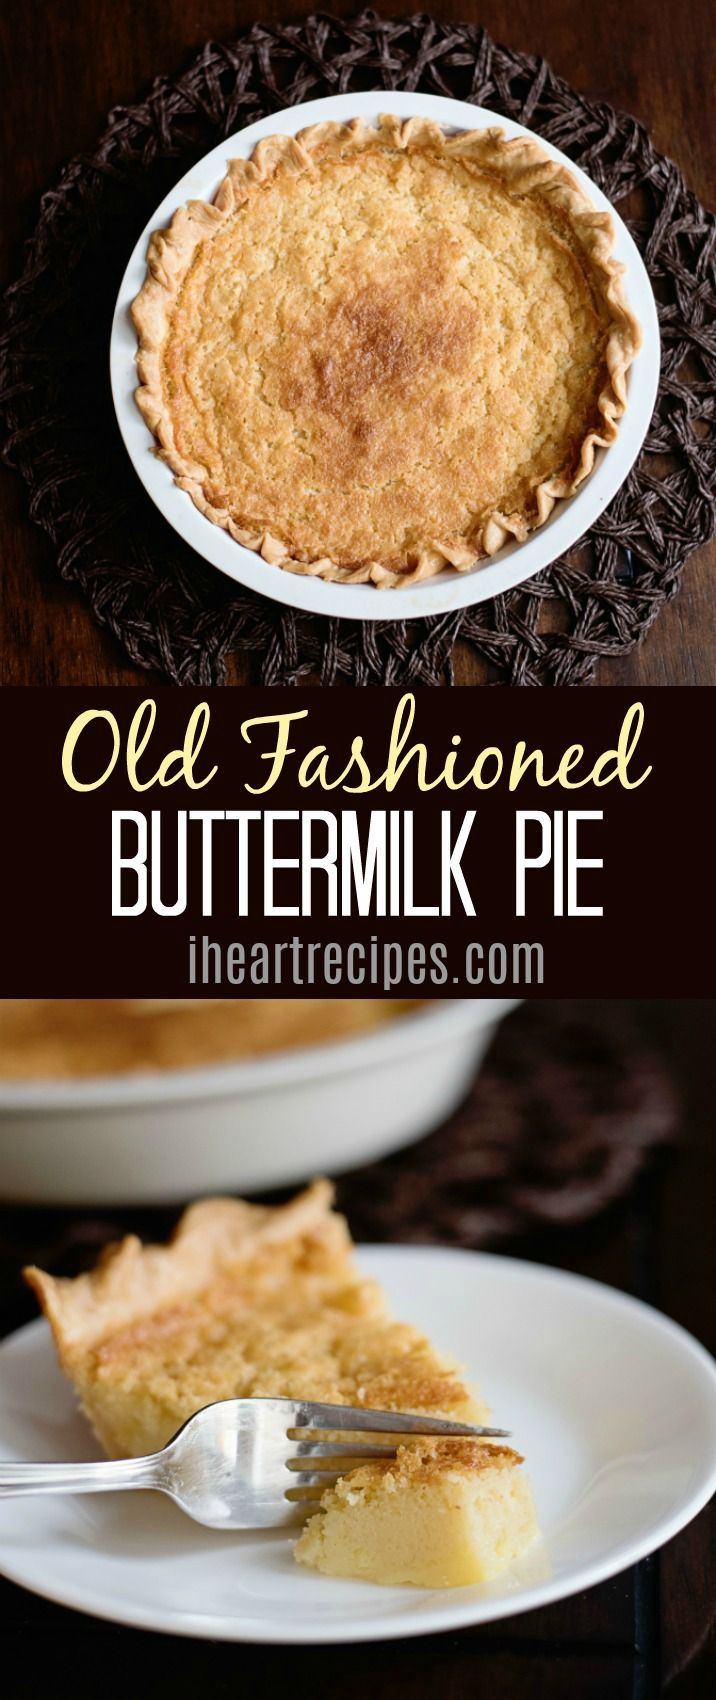 Old Fashioned Buttermilk Pie I Heart Recipes Recipe Buttermilk Pie Buttermilk Pie Recipe Southern Desserts